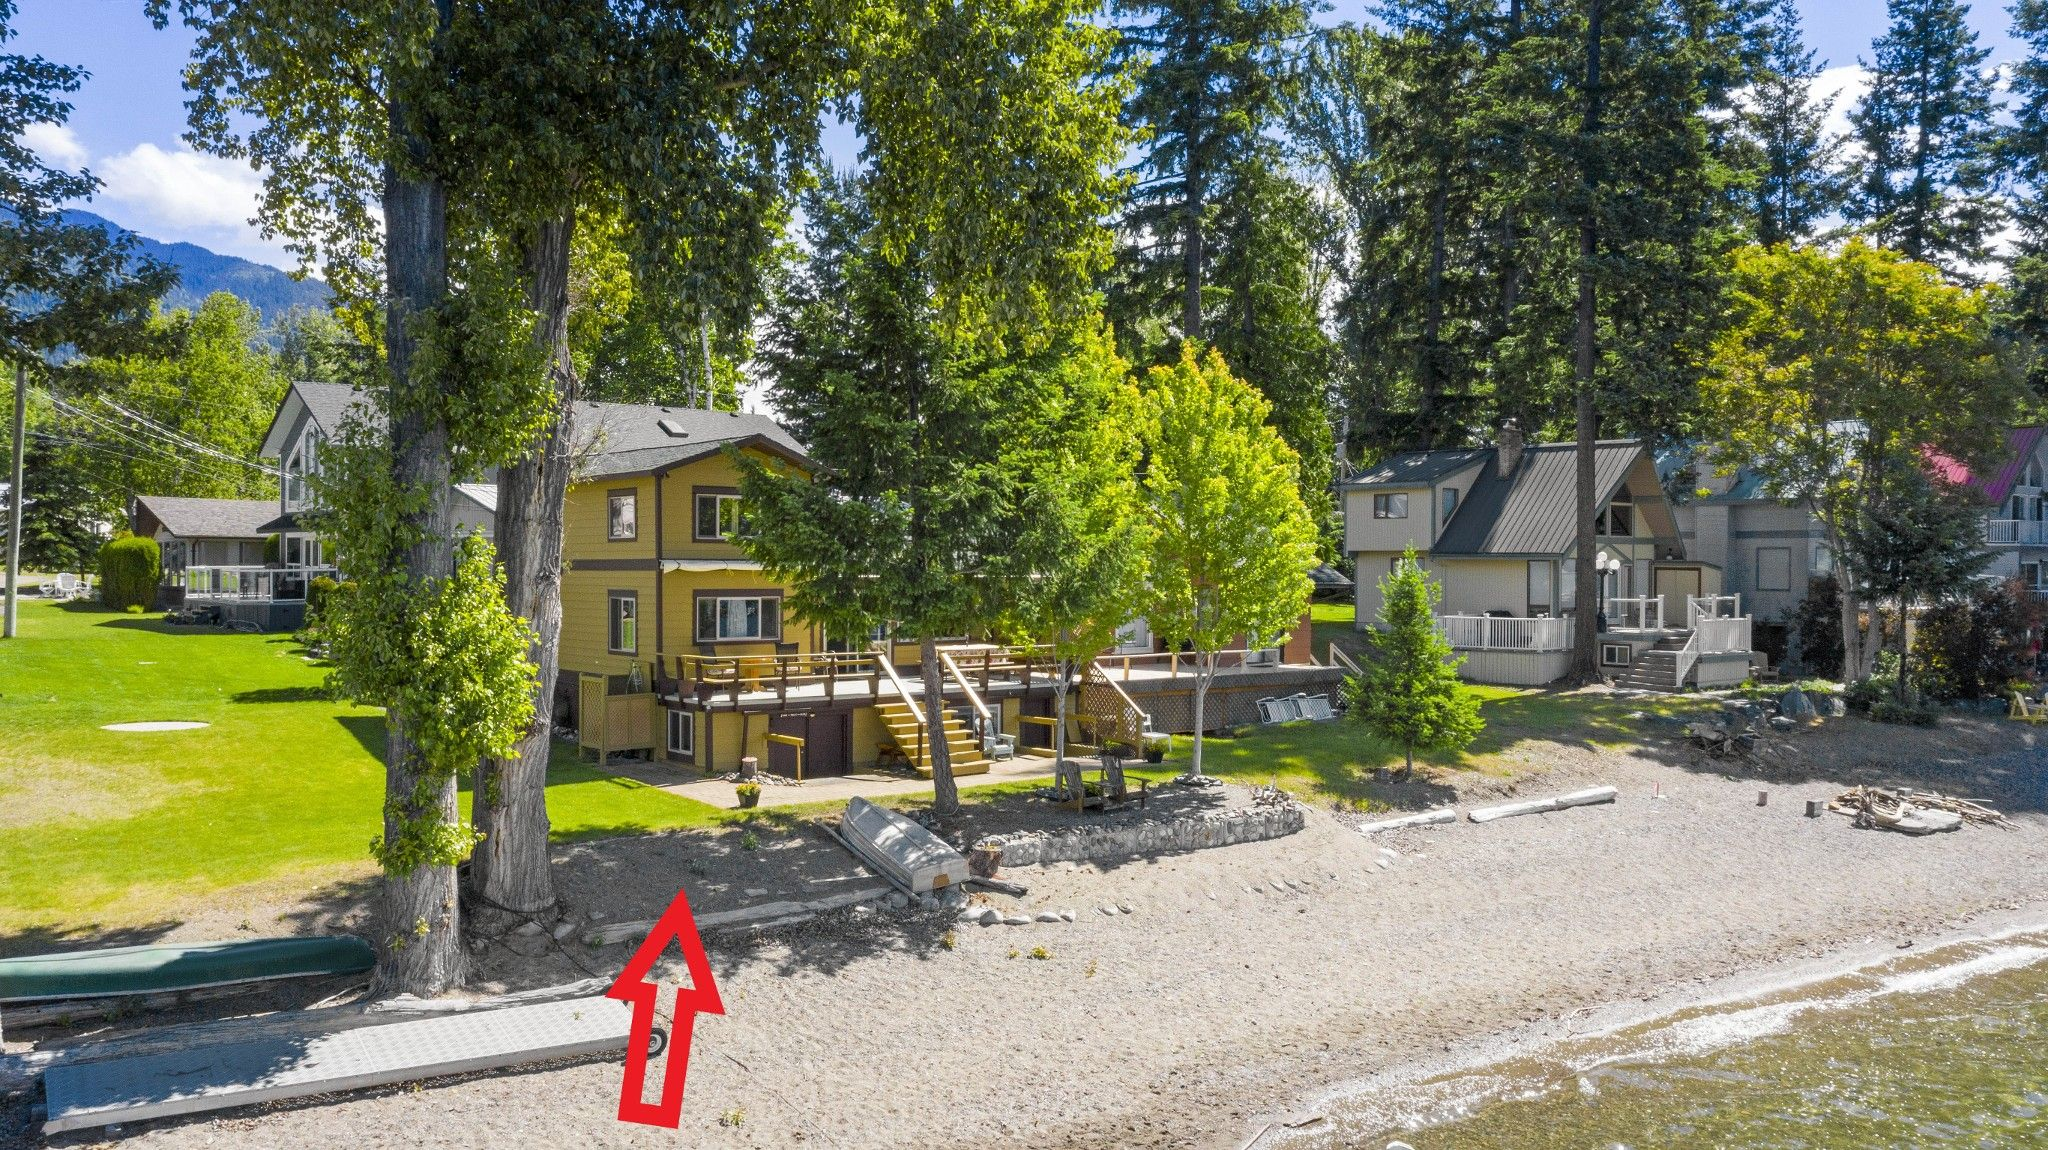 Main Photo: 1 6942 Squilax-Anglemont Road: MAGNA BAY House for sale (NORTH SHUSWAP)  : MLS®# 10233659